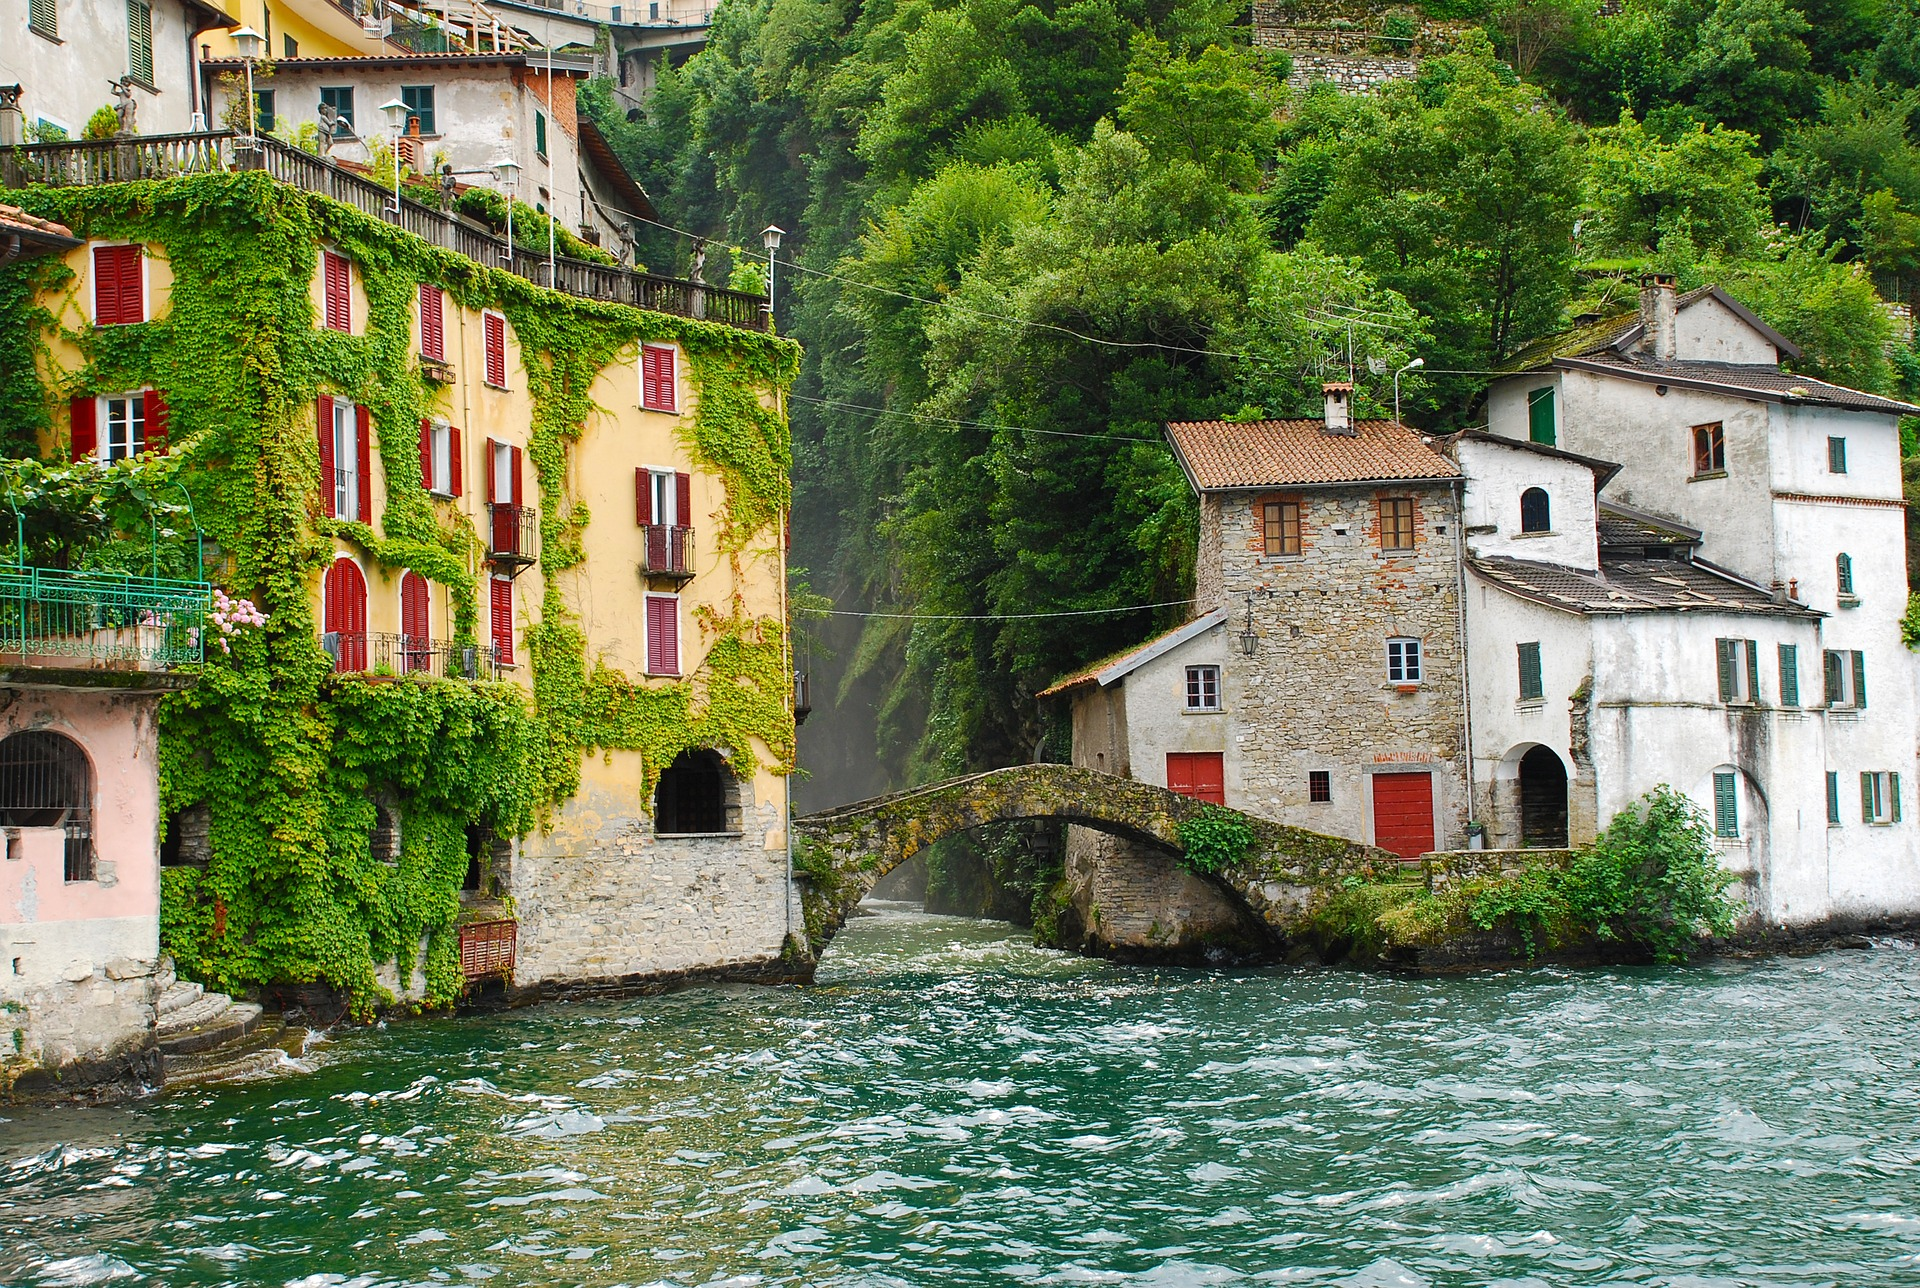 The Romance of the Italian Lakes - Roam amongst the Italian countryside surrounded by views of some of the world's most picturesque lakes. Both Lake Maggiore and Lake Como in Italy truly resonate with romanticism.29 September 2018 - 9 October 2018 from £1,425 per person.